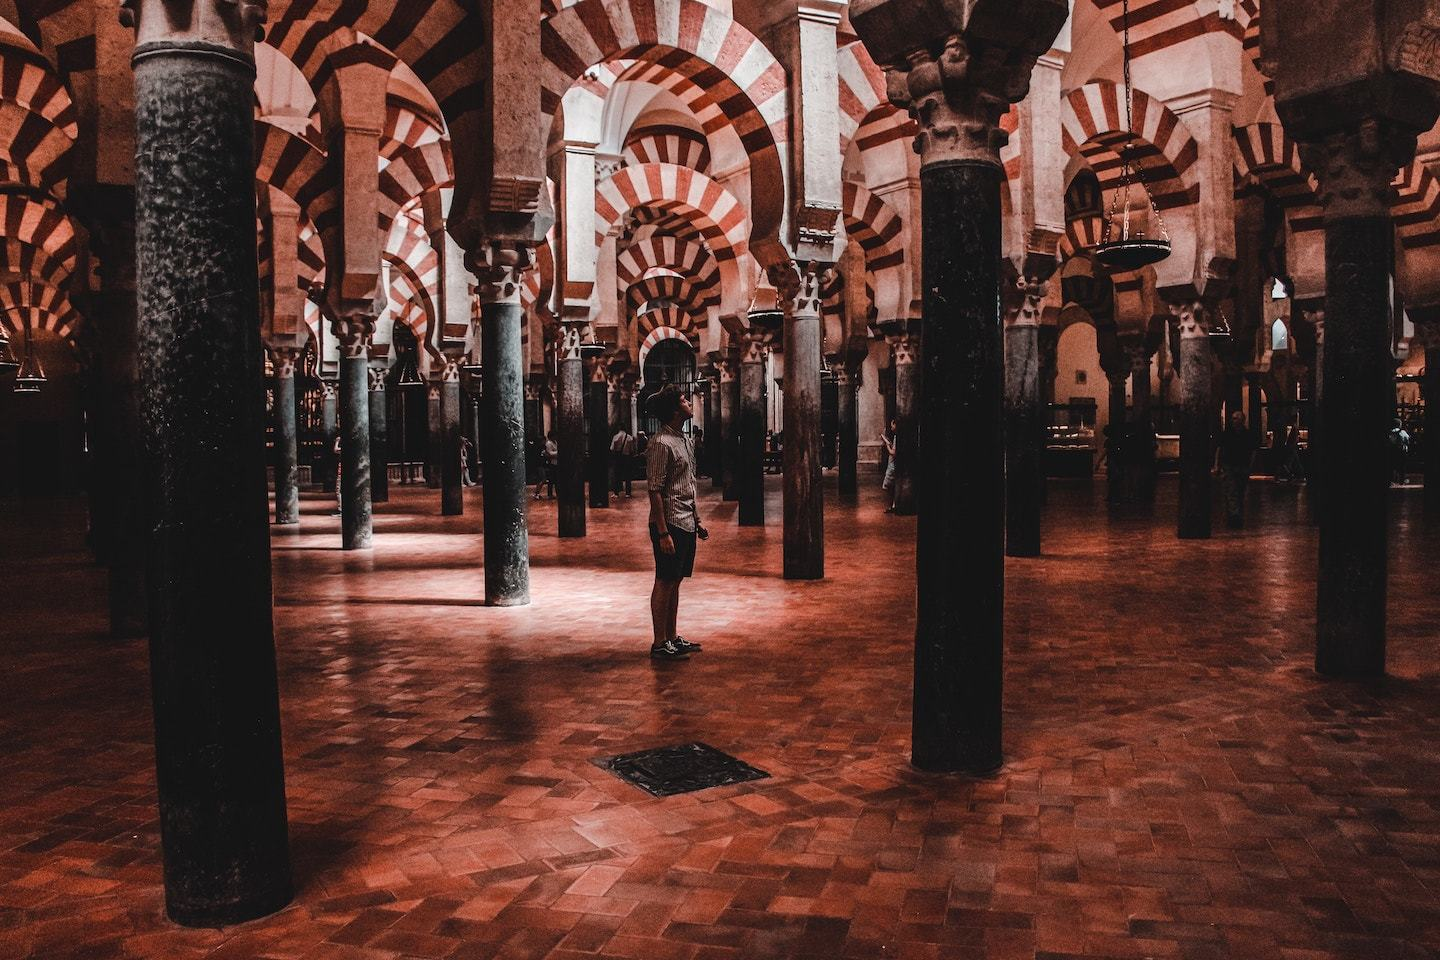 Mezquita mosque cathedral in cordoba spain